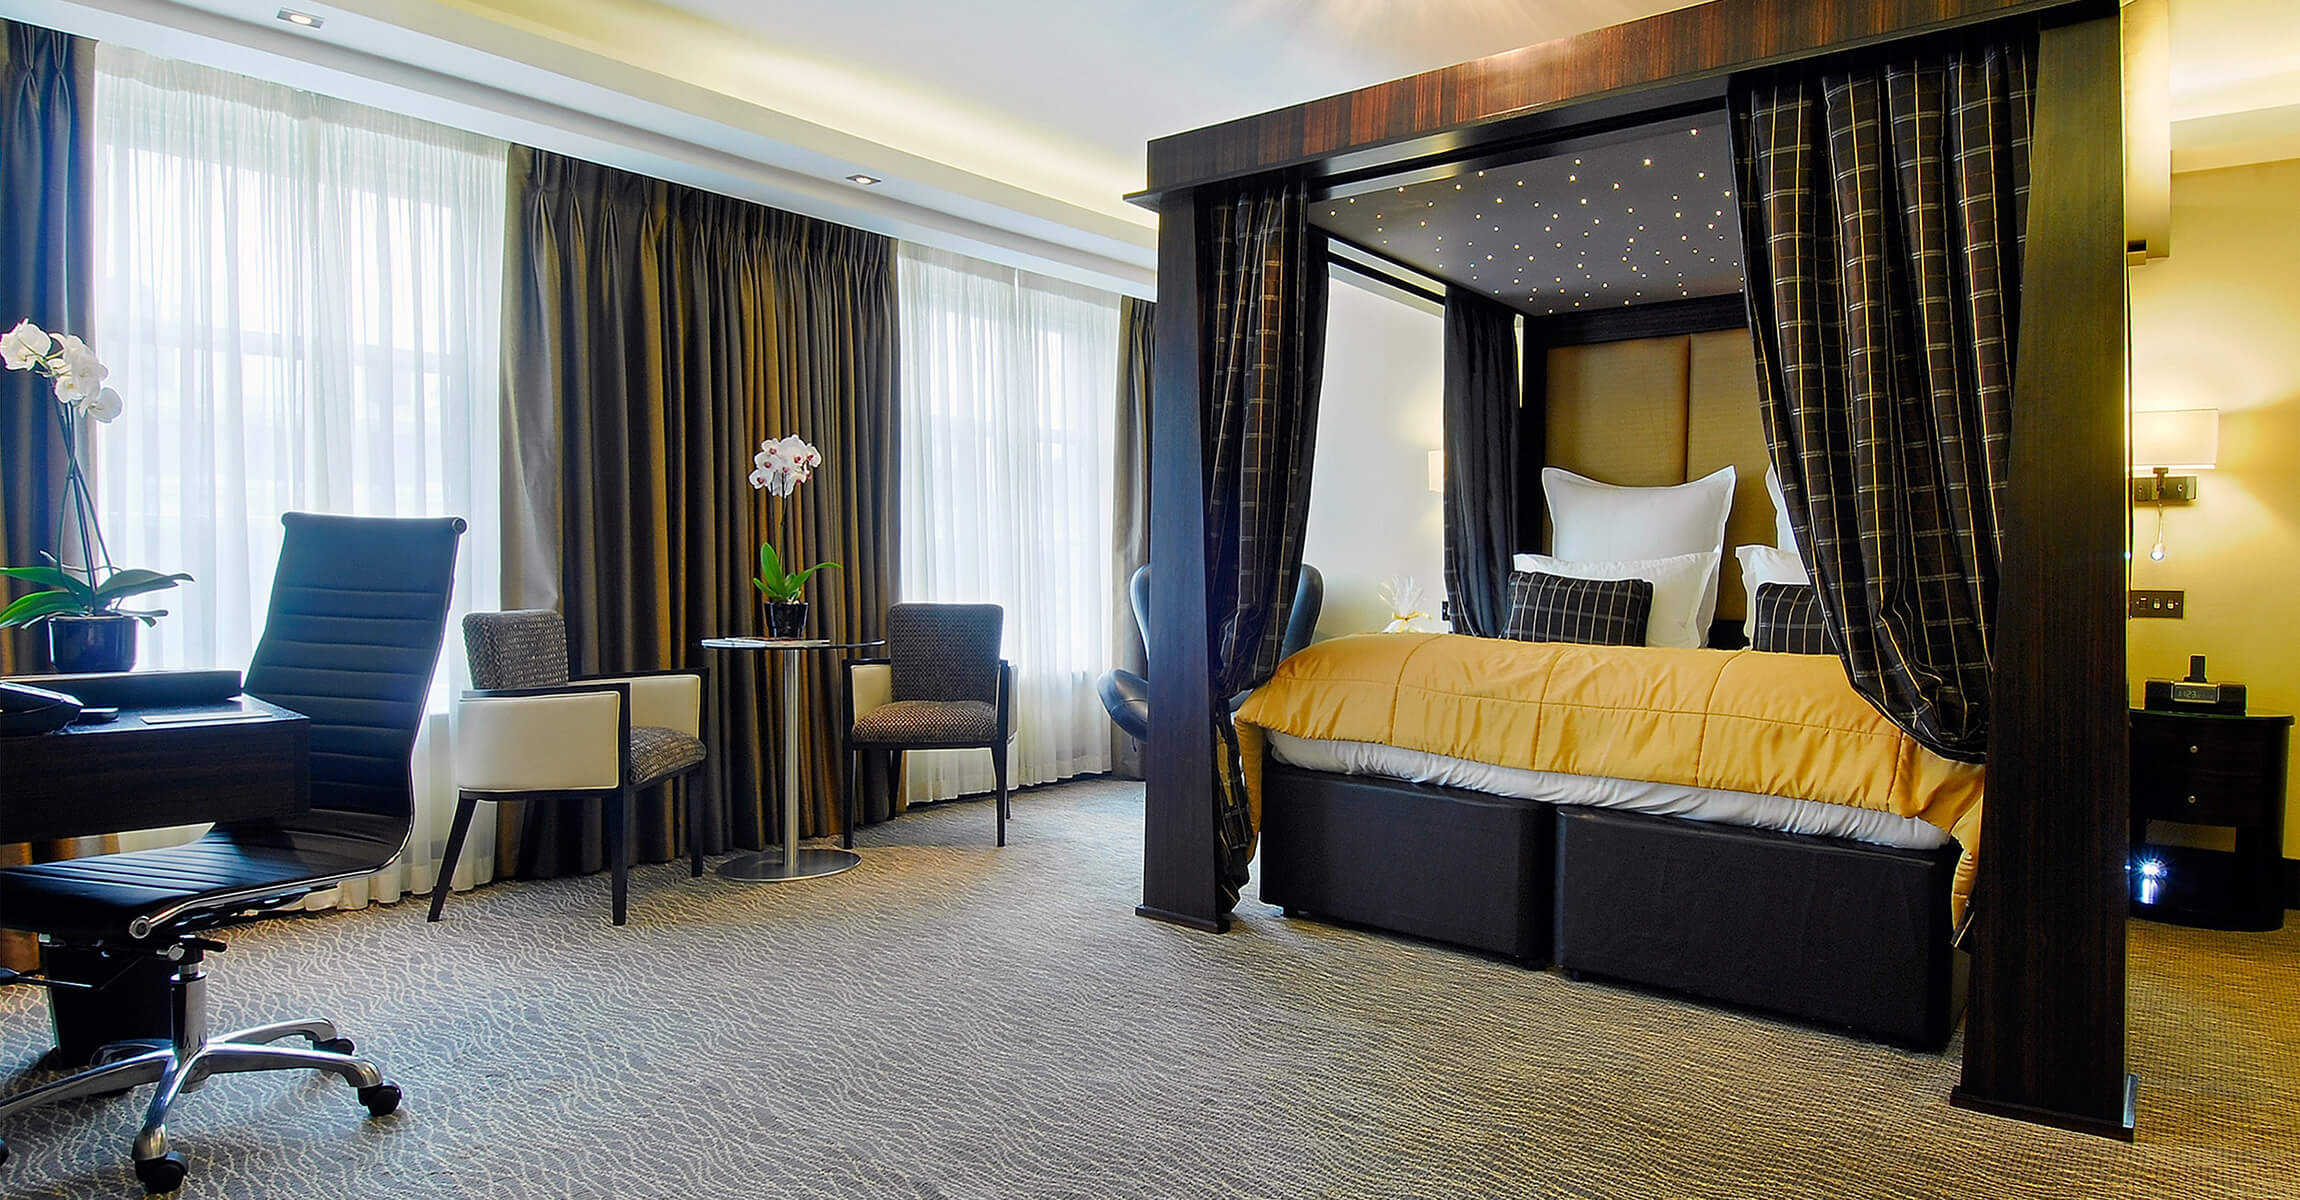 The Royal Suite at The Montcalm Marble Arch